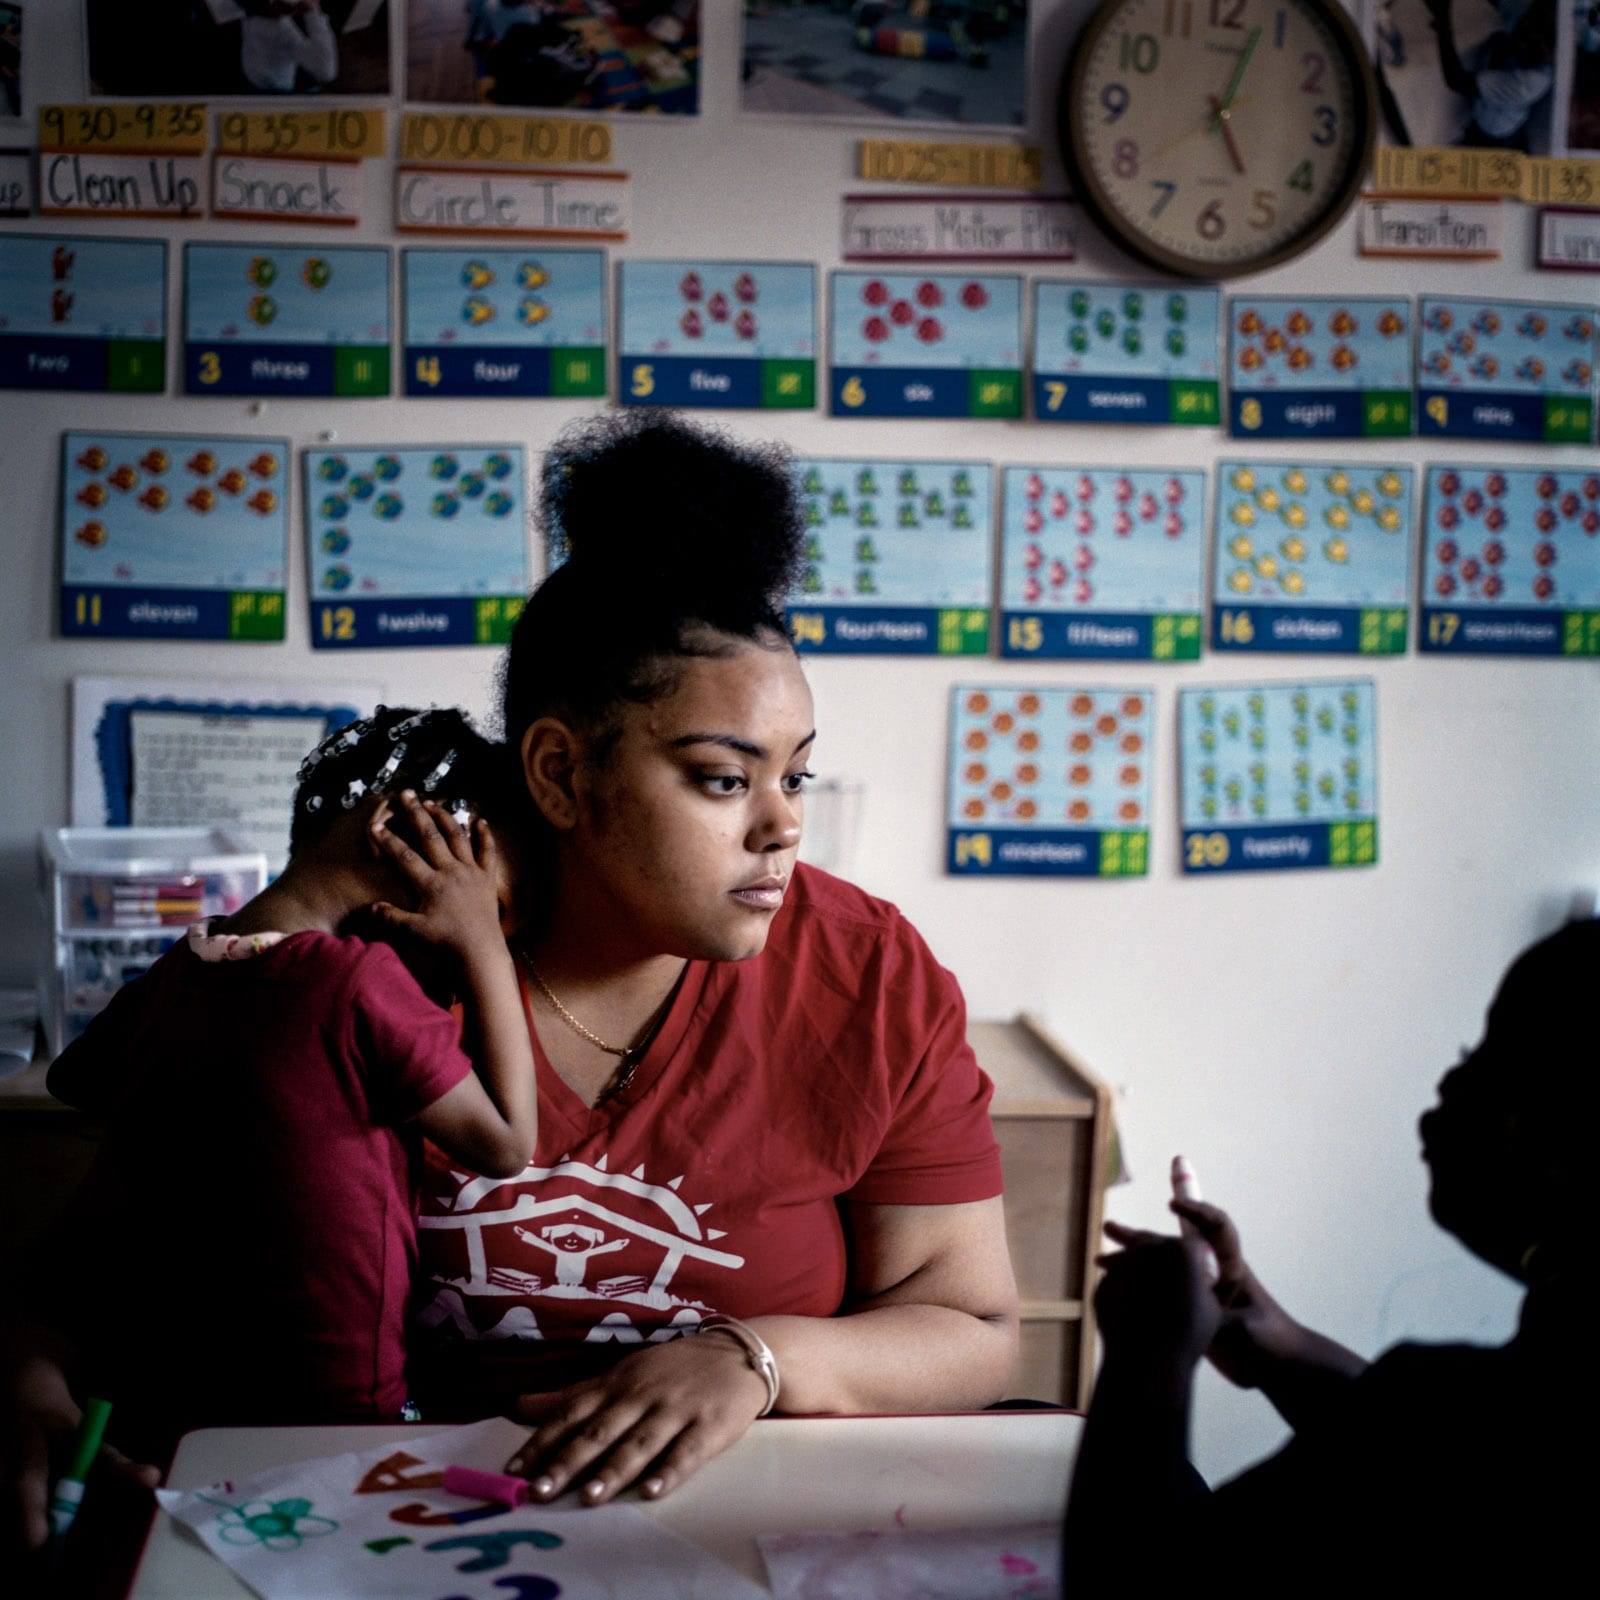 News Report: The Childcare Crisis – Why Affordable Childcare Is Out Of Reach For So Many People (Time Magazine Oct. 2019)